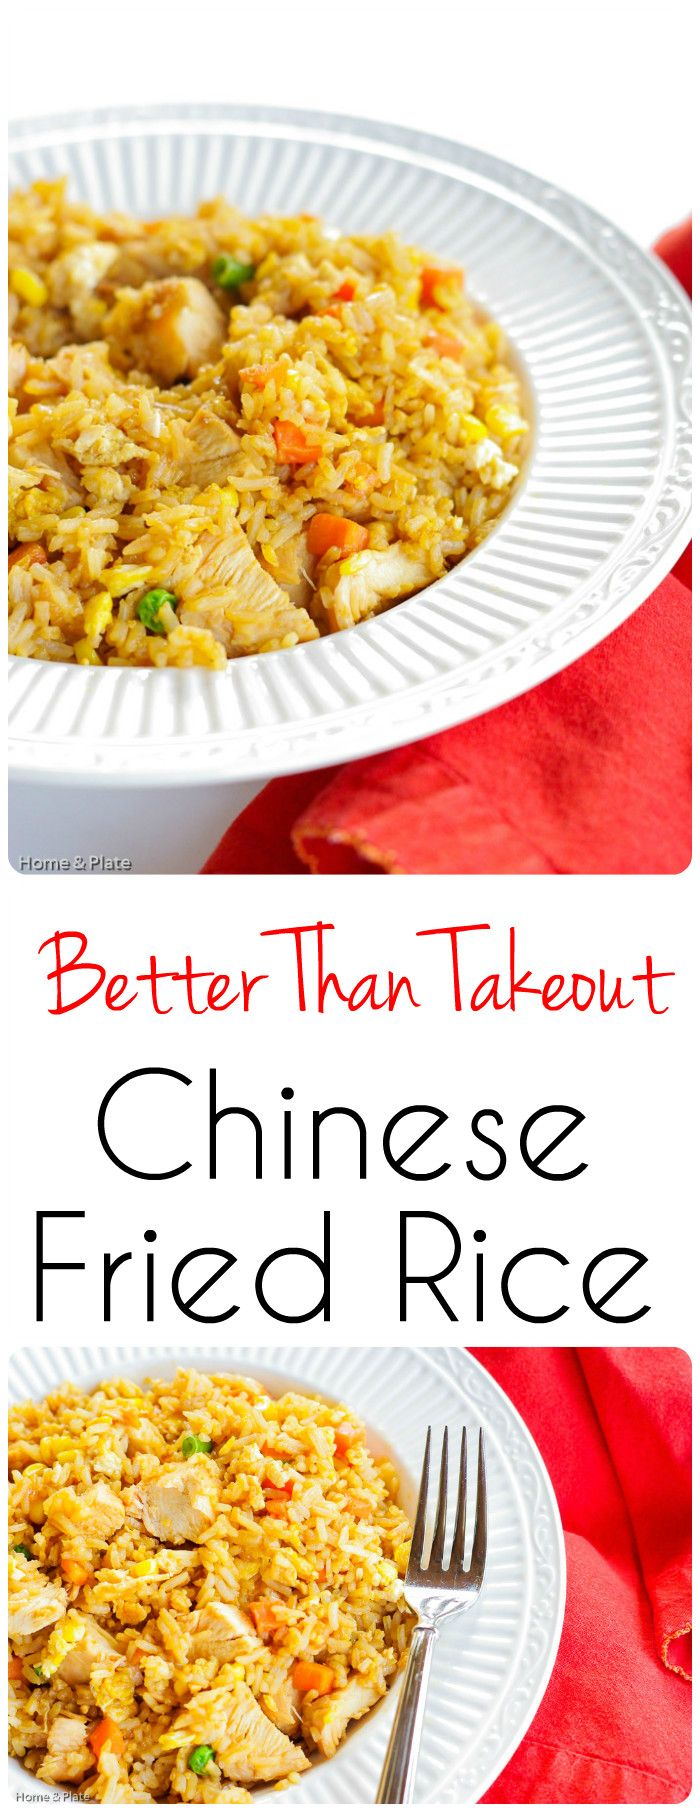 Better Than Takeout Chinese Fried Rice | Home & Plate | www.homeandplate.com | My Better Than Takeout Chinese Fried Rice recipe uses 5 simple ingredients in one dish that packs protein and veggie goodness all in one.